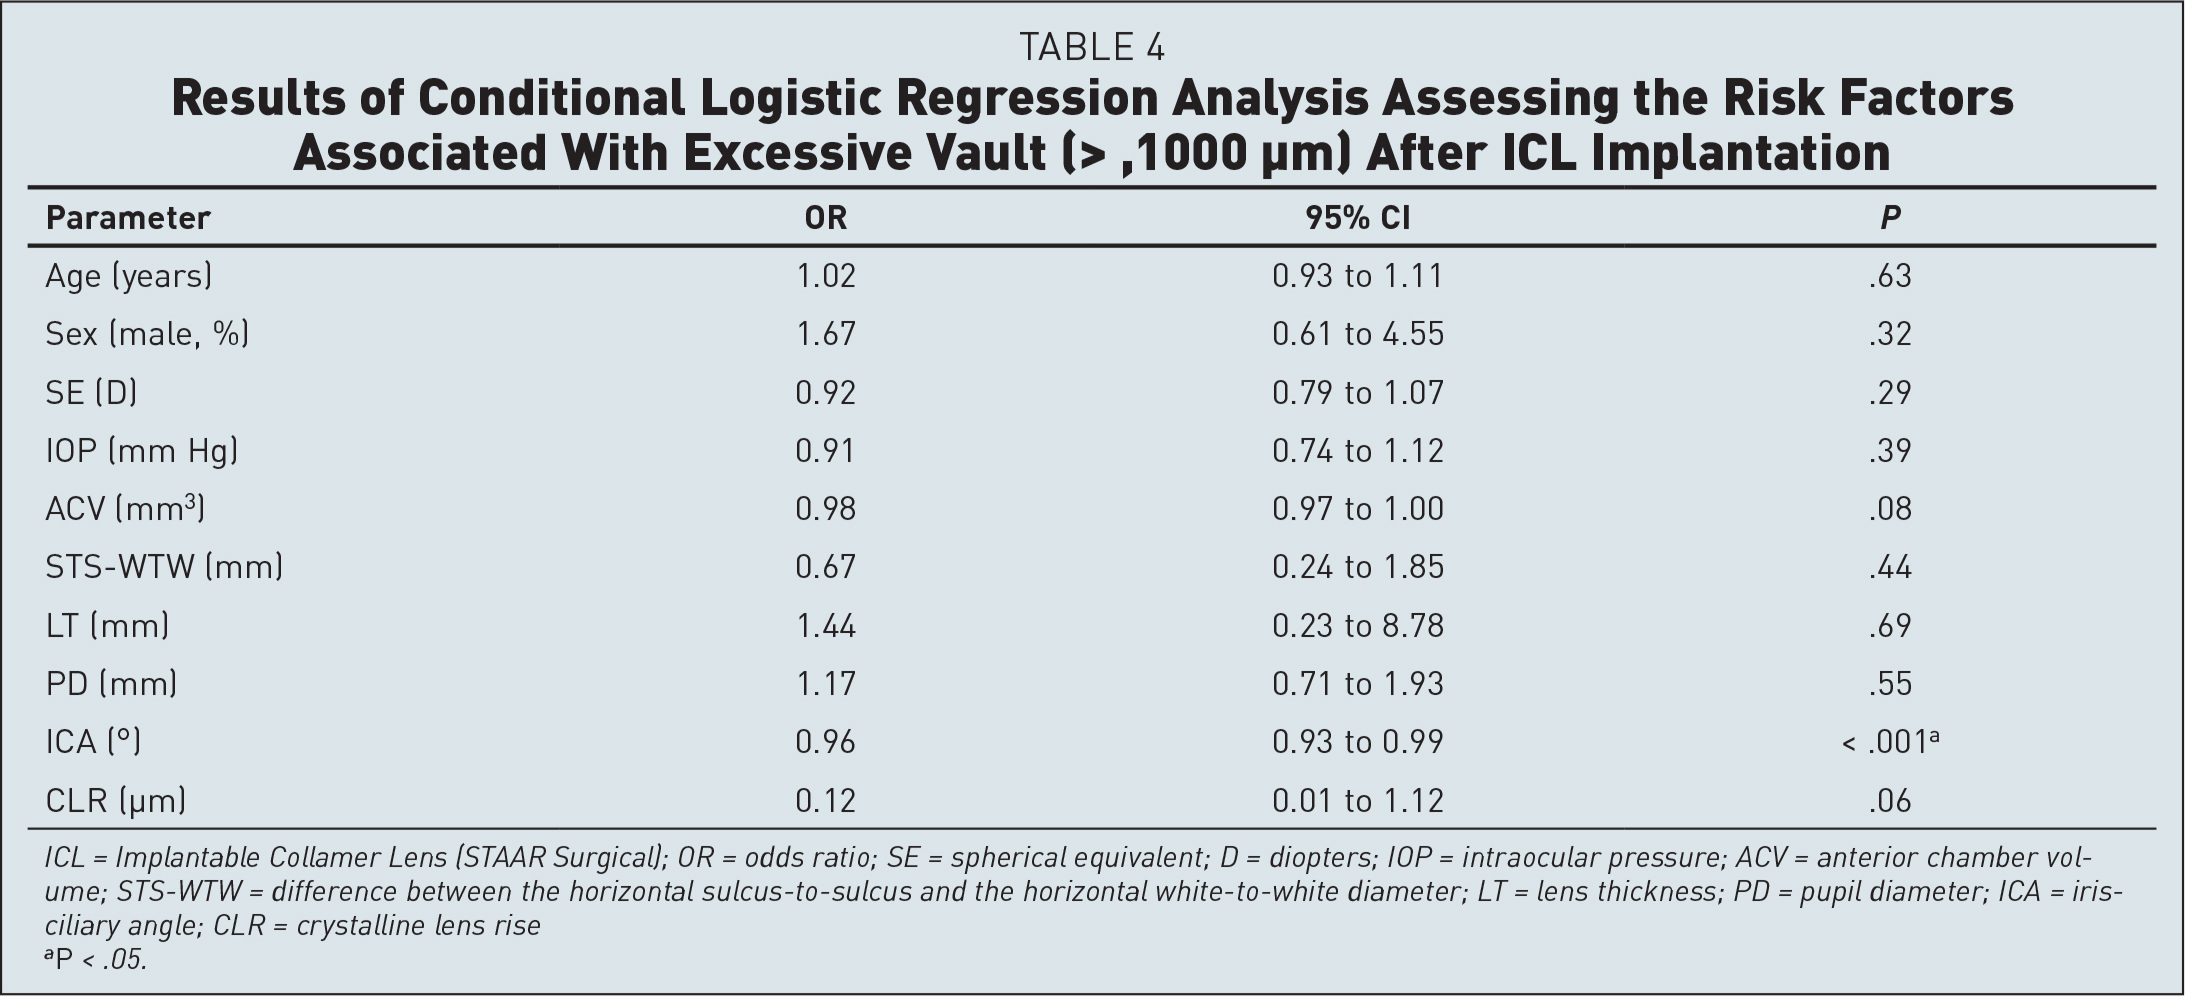 Results of Conditional Logistic Regression Analysis Assessing the Risk Factors Associated With Excessive Vault (>, 1000 µm) After ICL Implantation